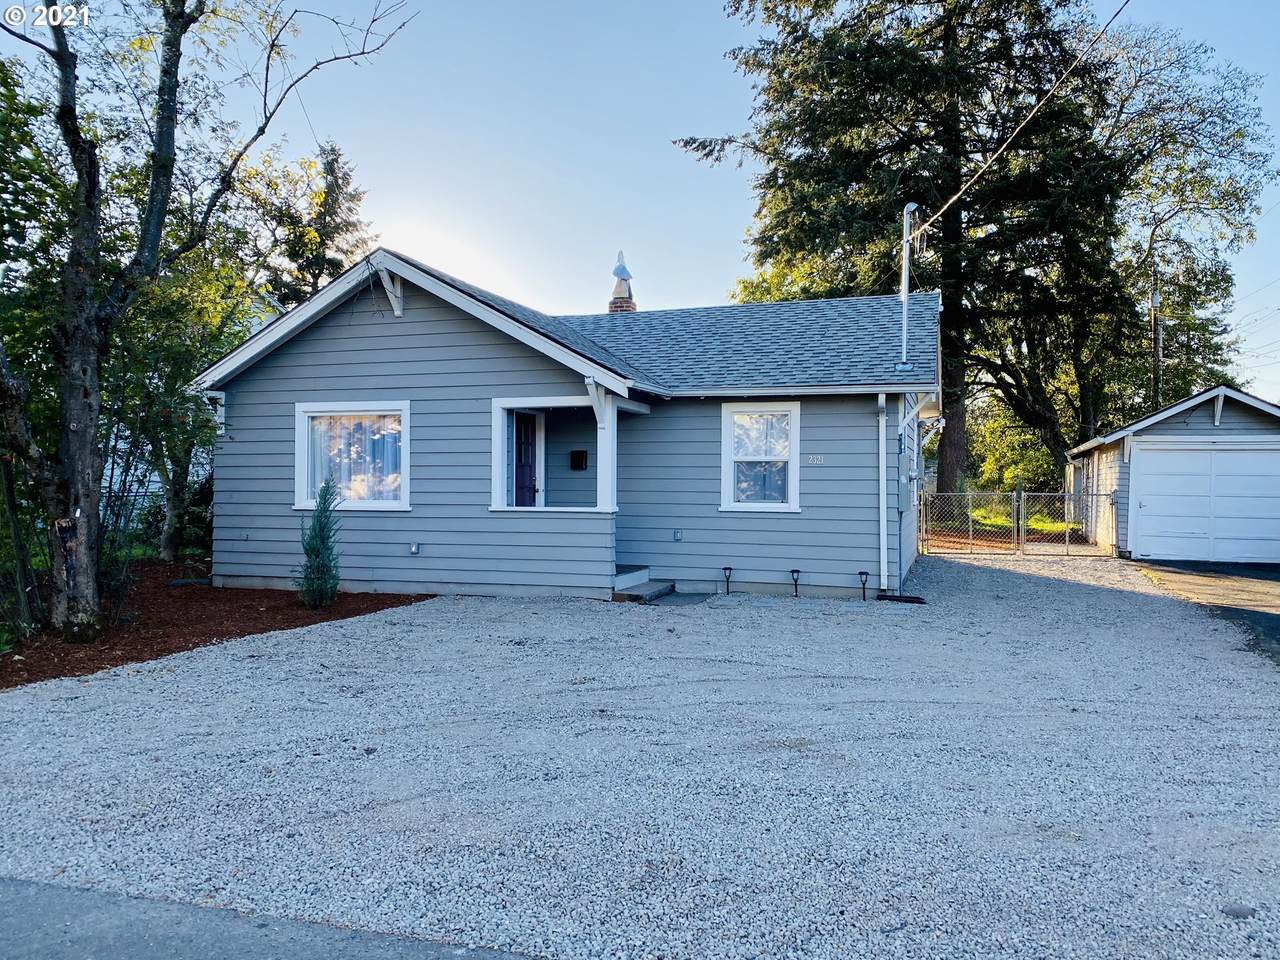 2321 89TH Ave - Photo 1